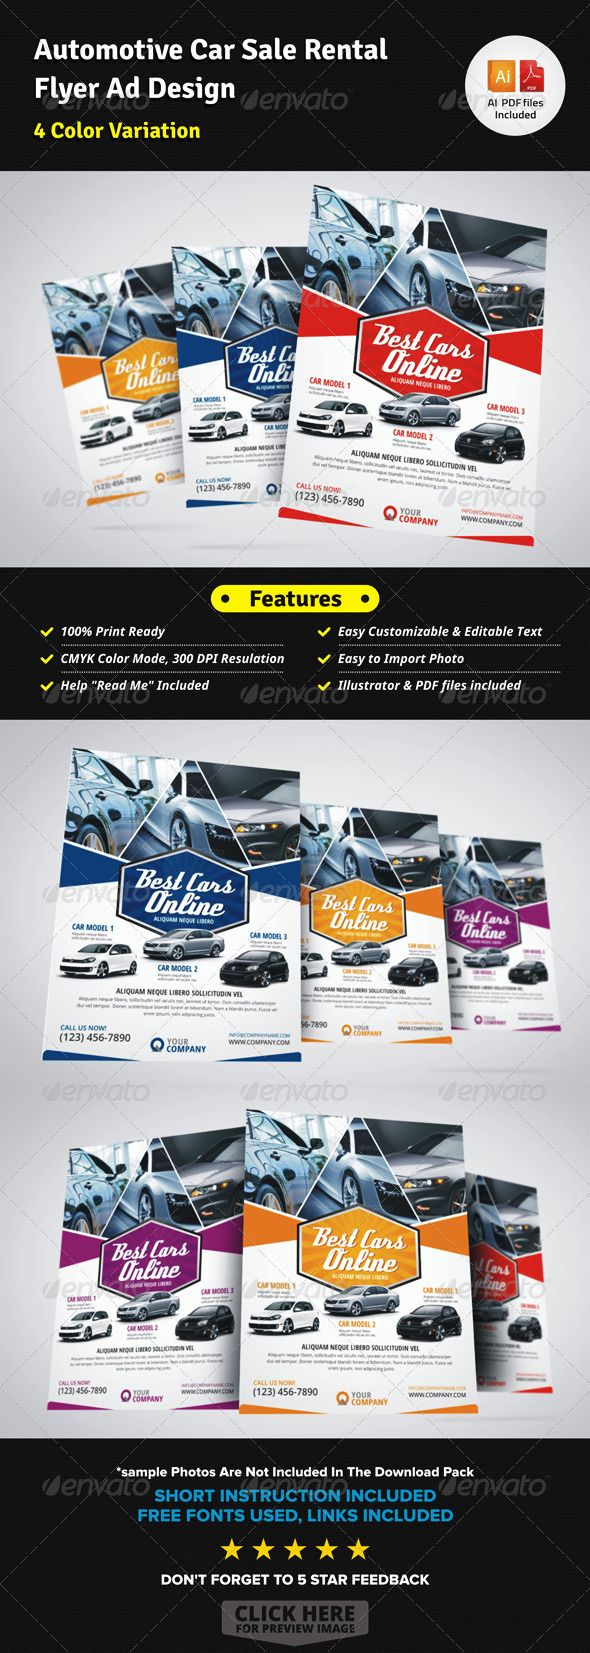 Automotive Car Sale Rental Flyer Ad  For Sale Ad Template